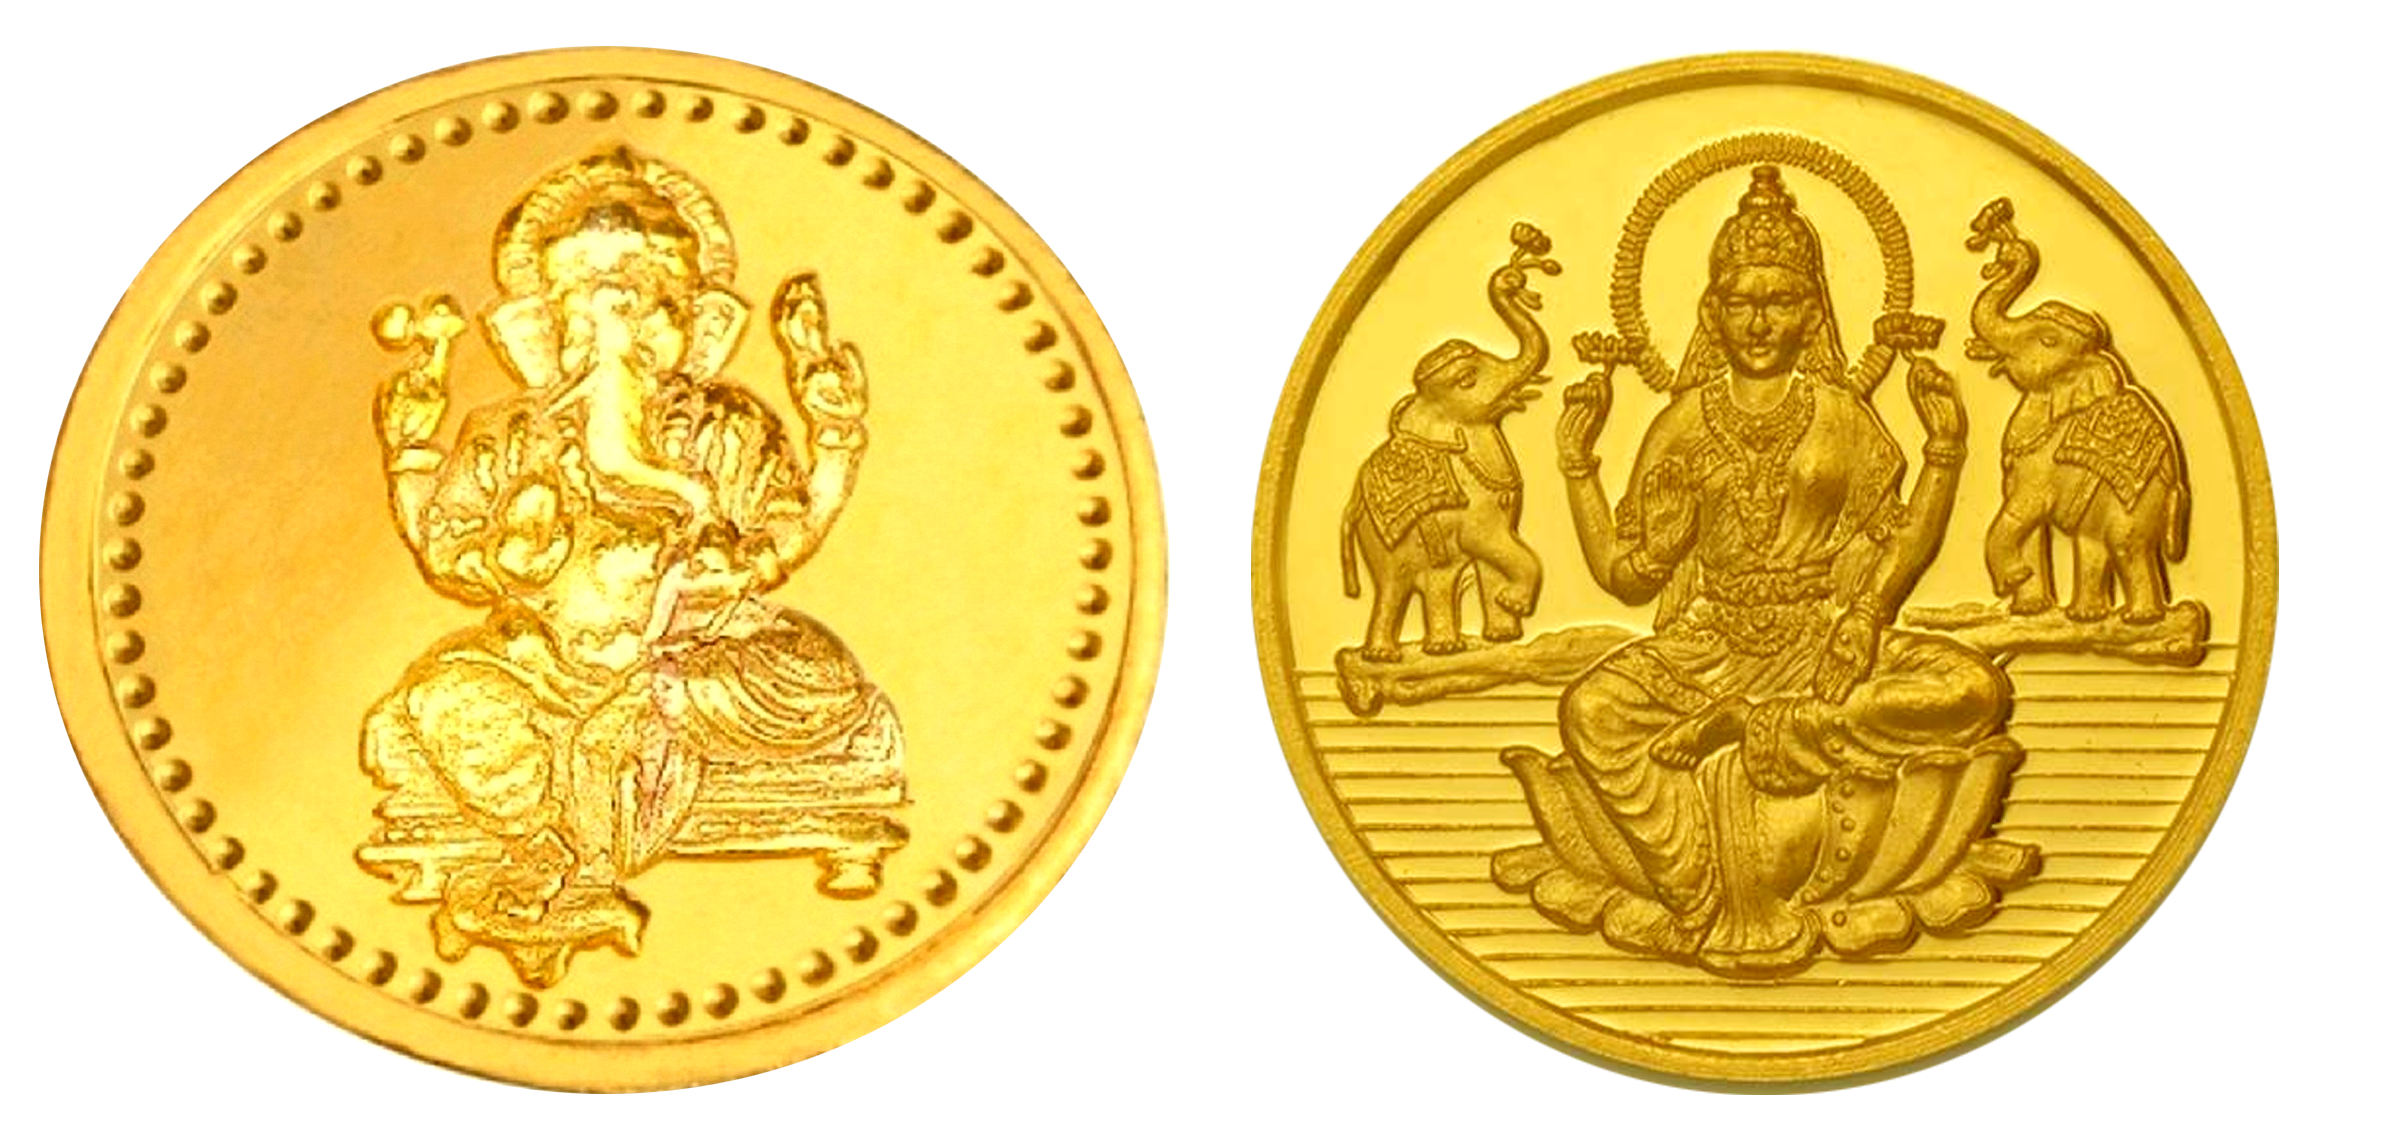 Png jewellers gold coin. Coins hd transparent images